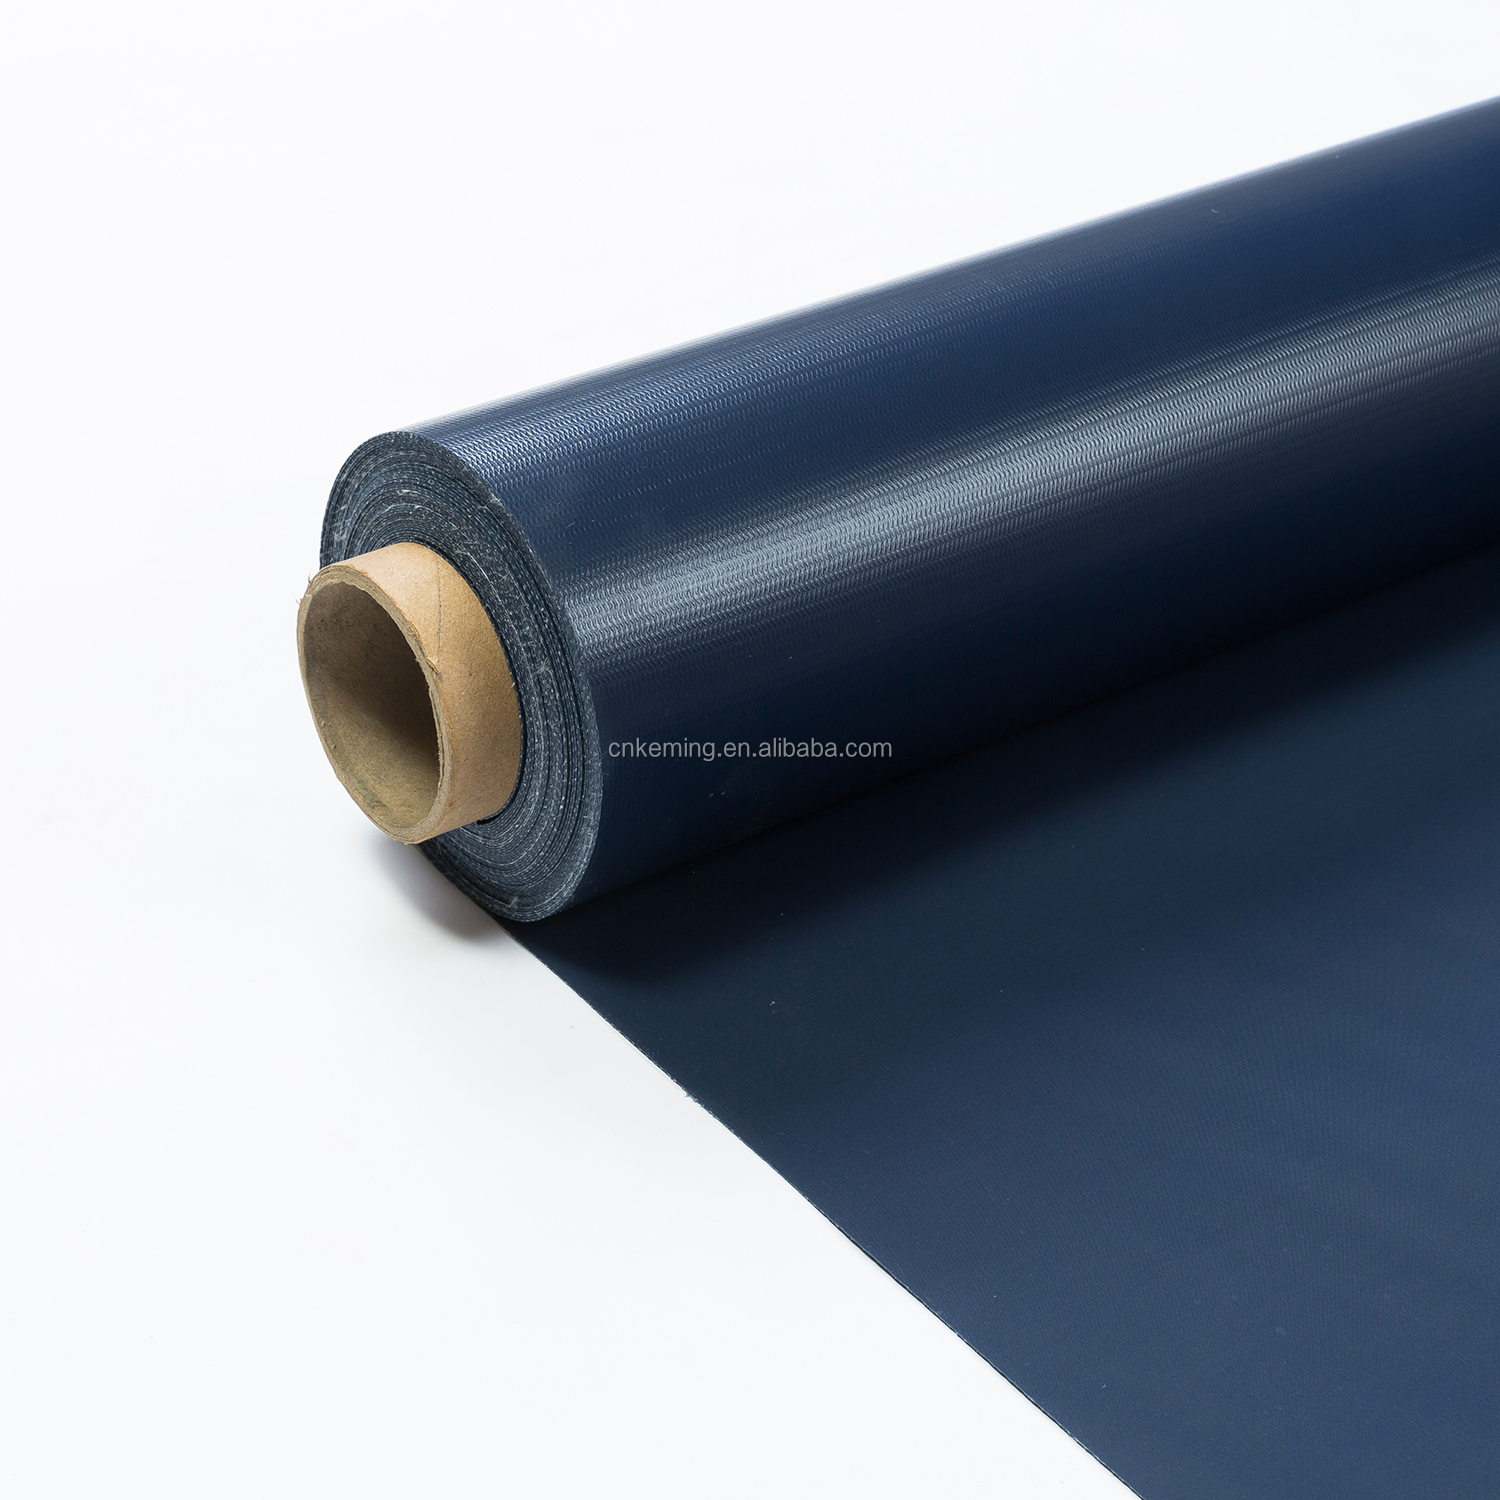 heavy duty waterproof pvc coated truck cover tarpaulin fabric roll